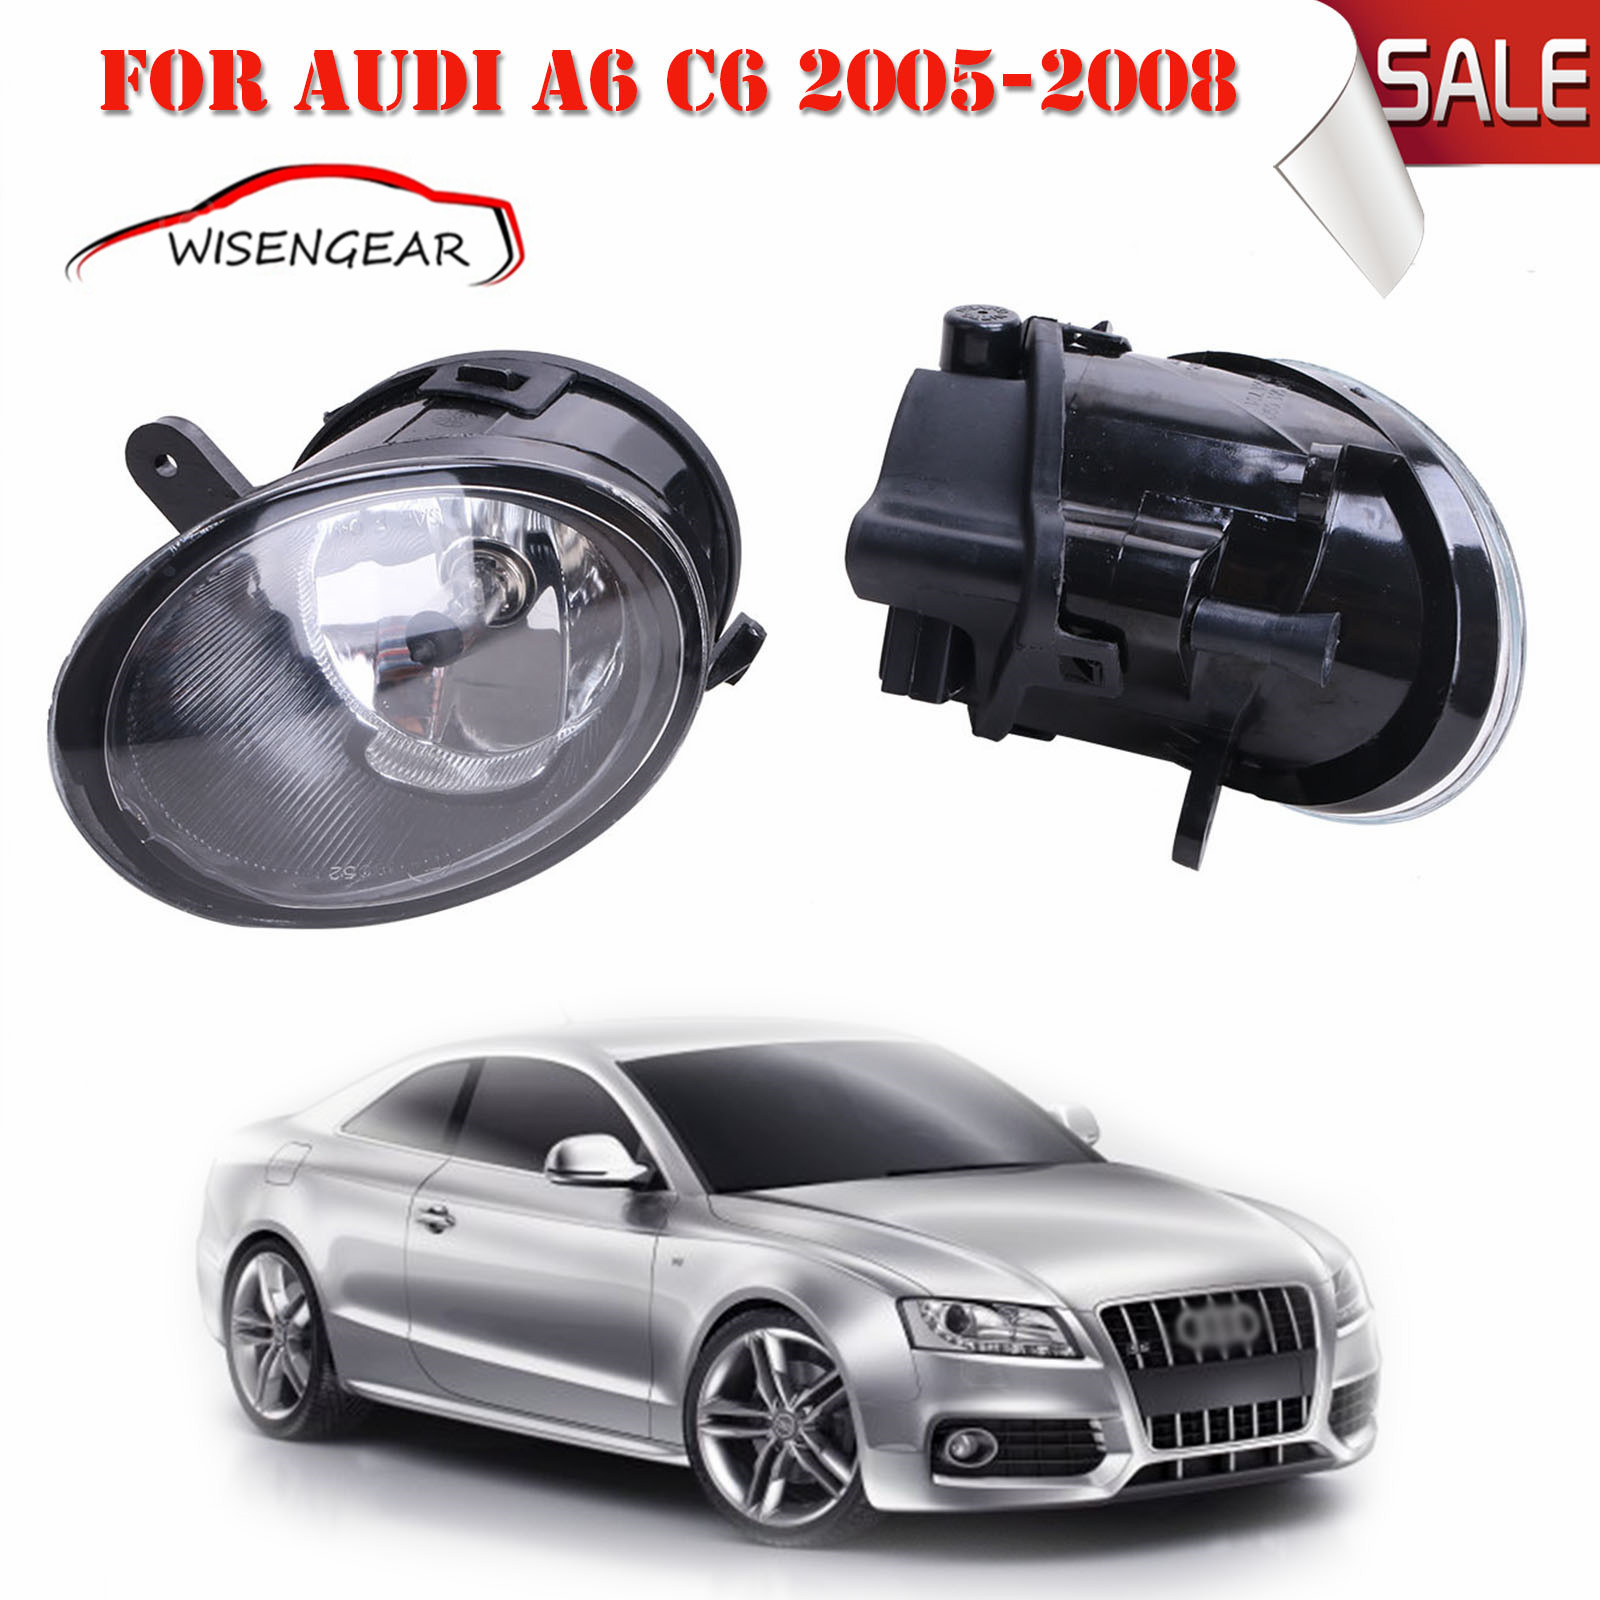 Car Light Left & Right Front Fog Driving Light Fog Lamps with H7 Bulbs For AUDI A6 C6 2005 2006 2007 2008 C/5 free shipping for vw polo 2005 2006 2007 2008 new front left side halogen fog light fog light with bulb